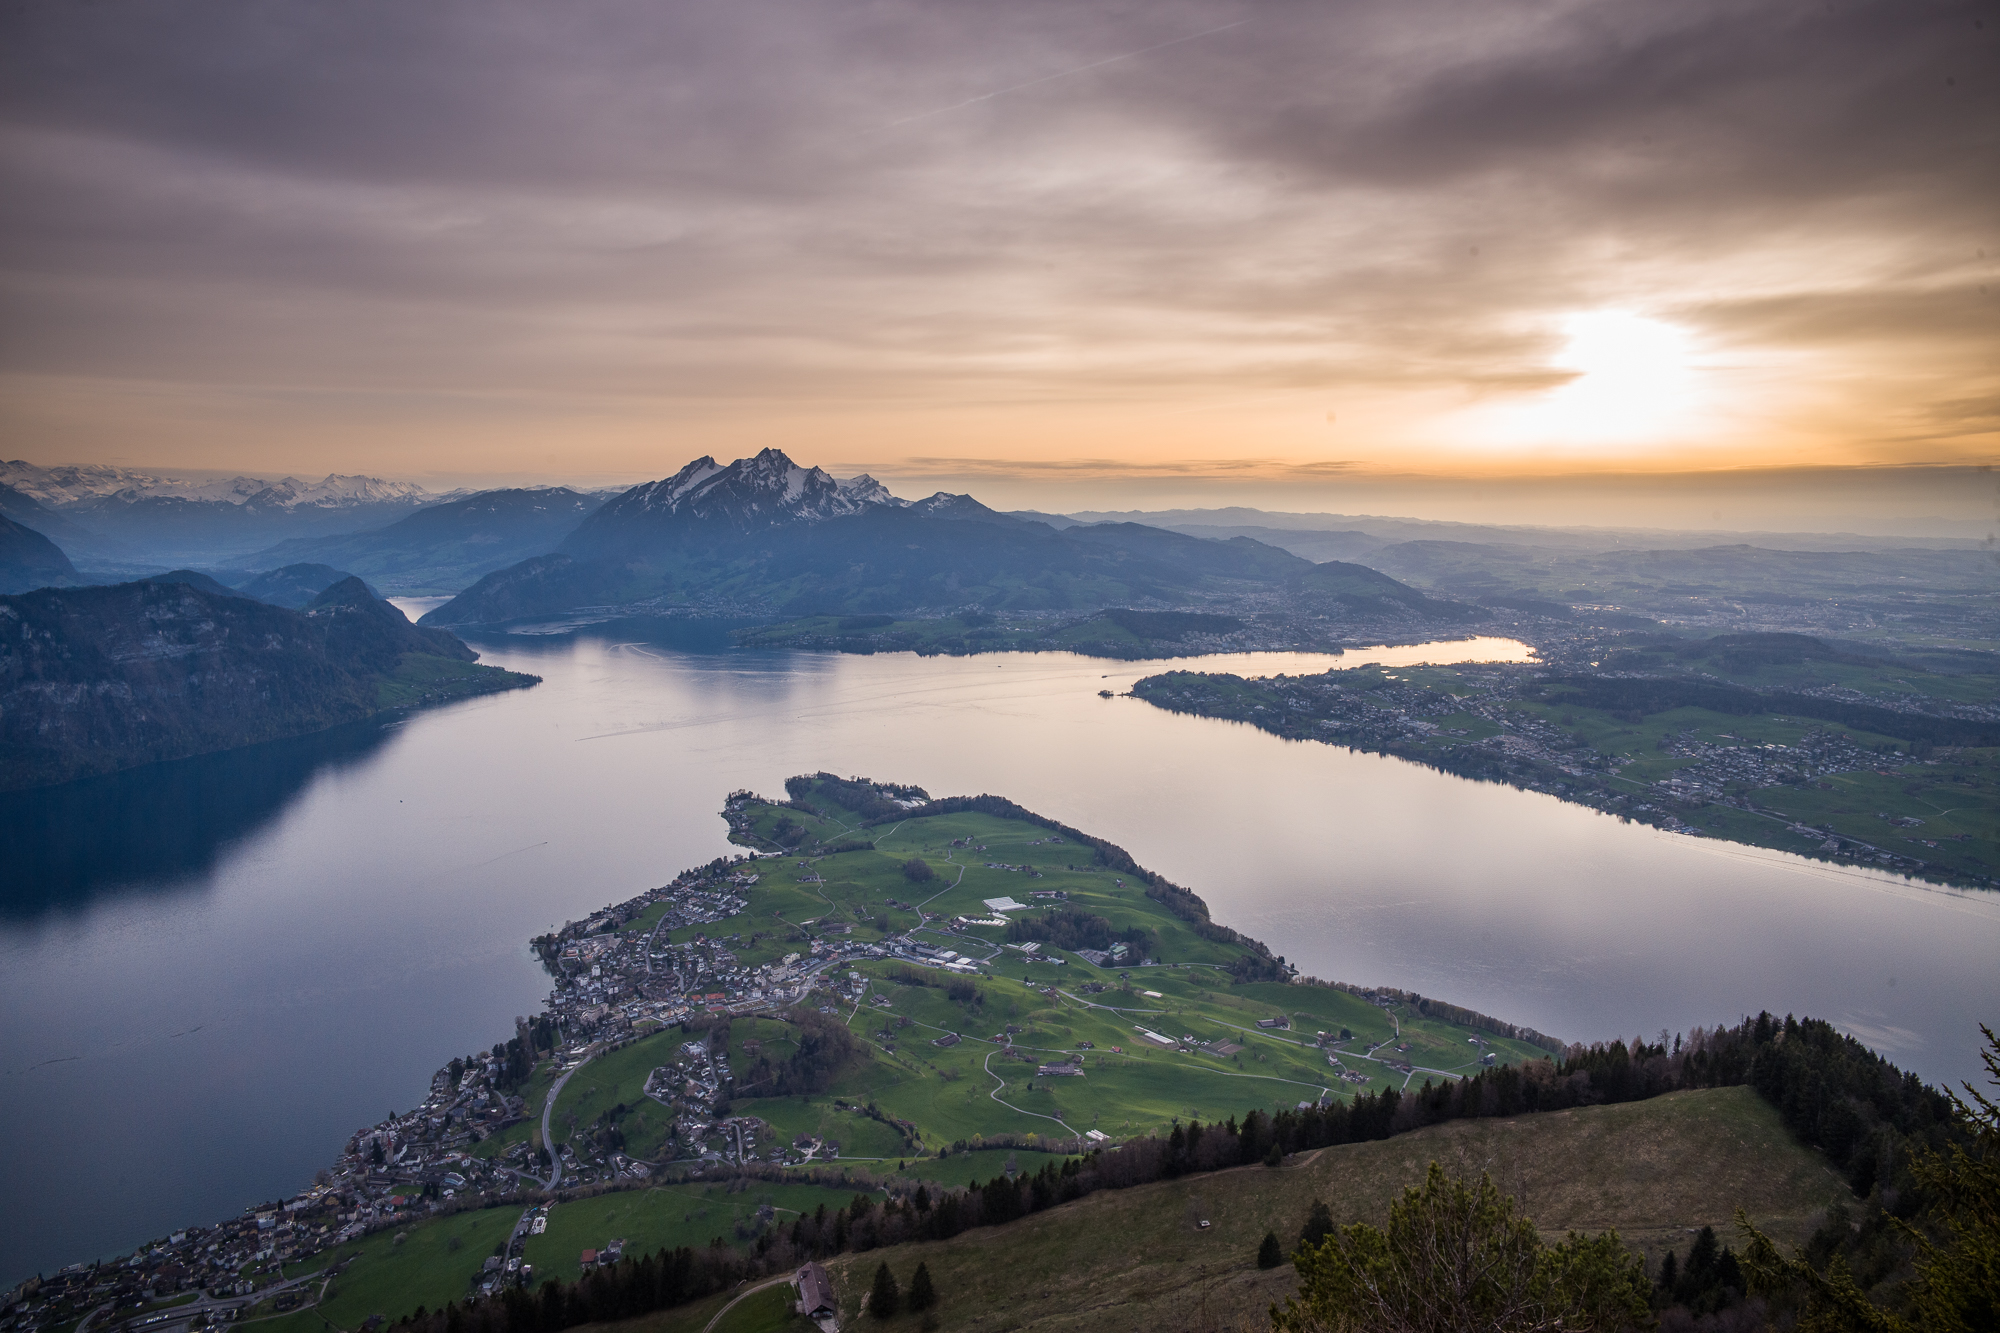 Lake Lucerne from the Rigi